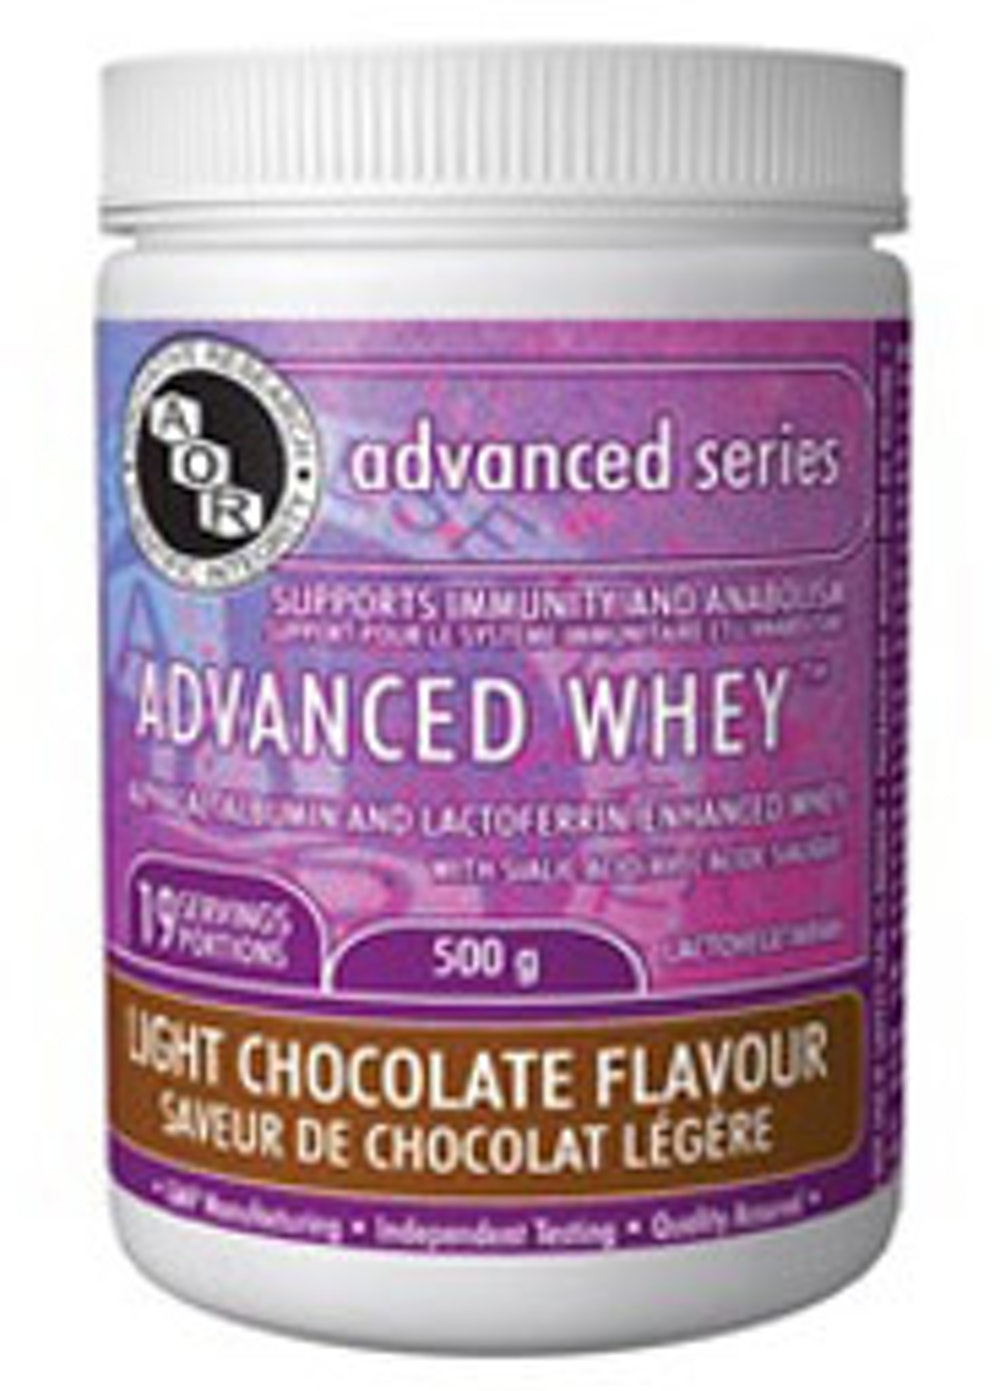 Advanced Whey Chocolat